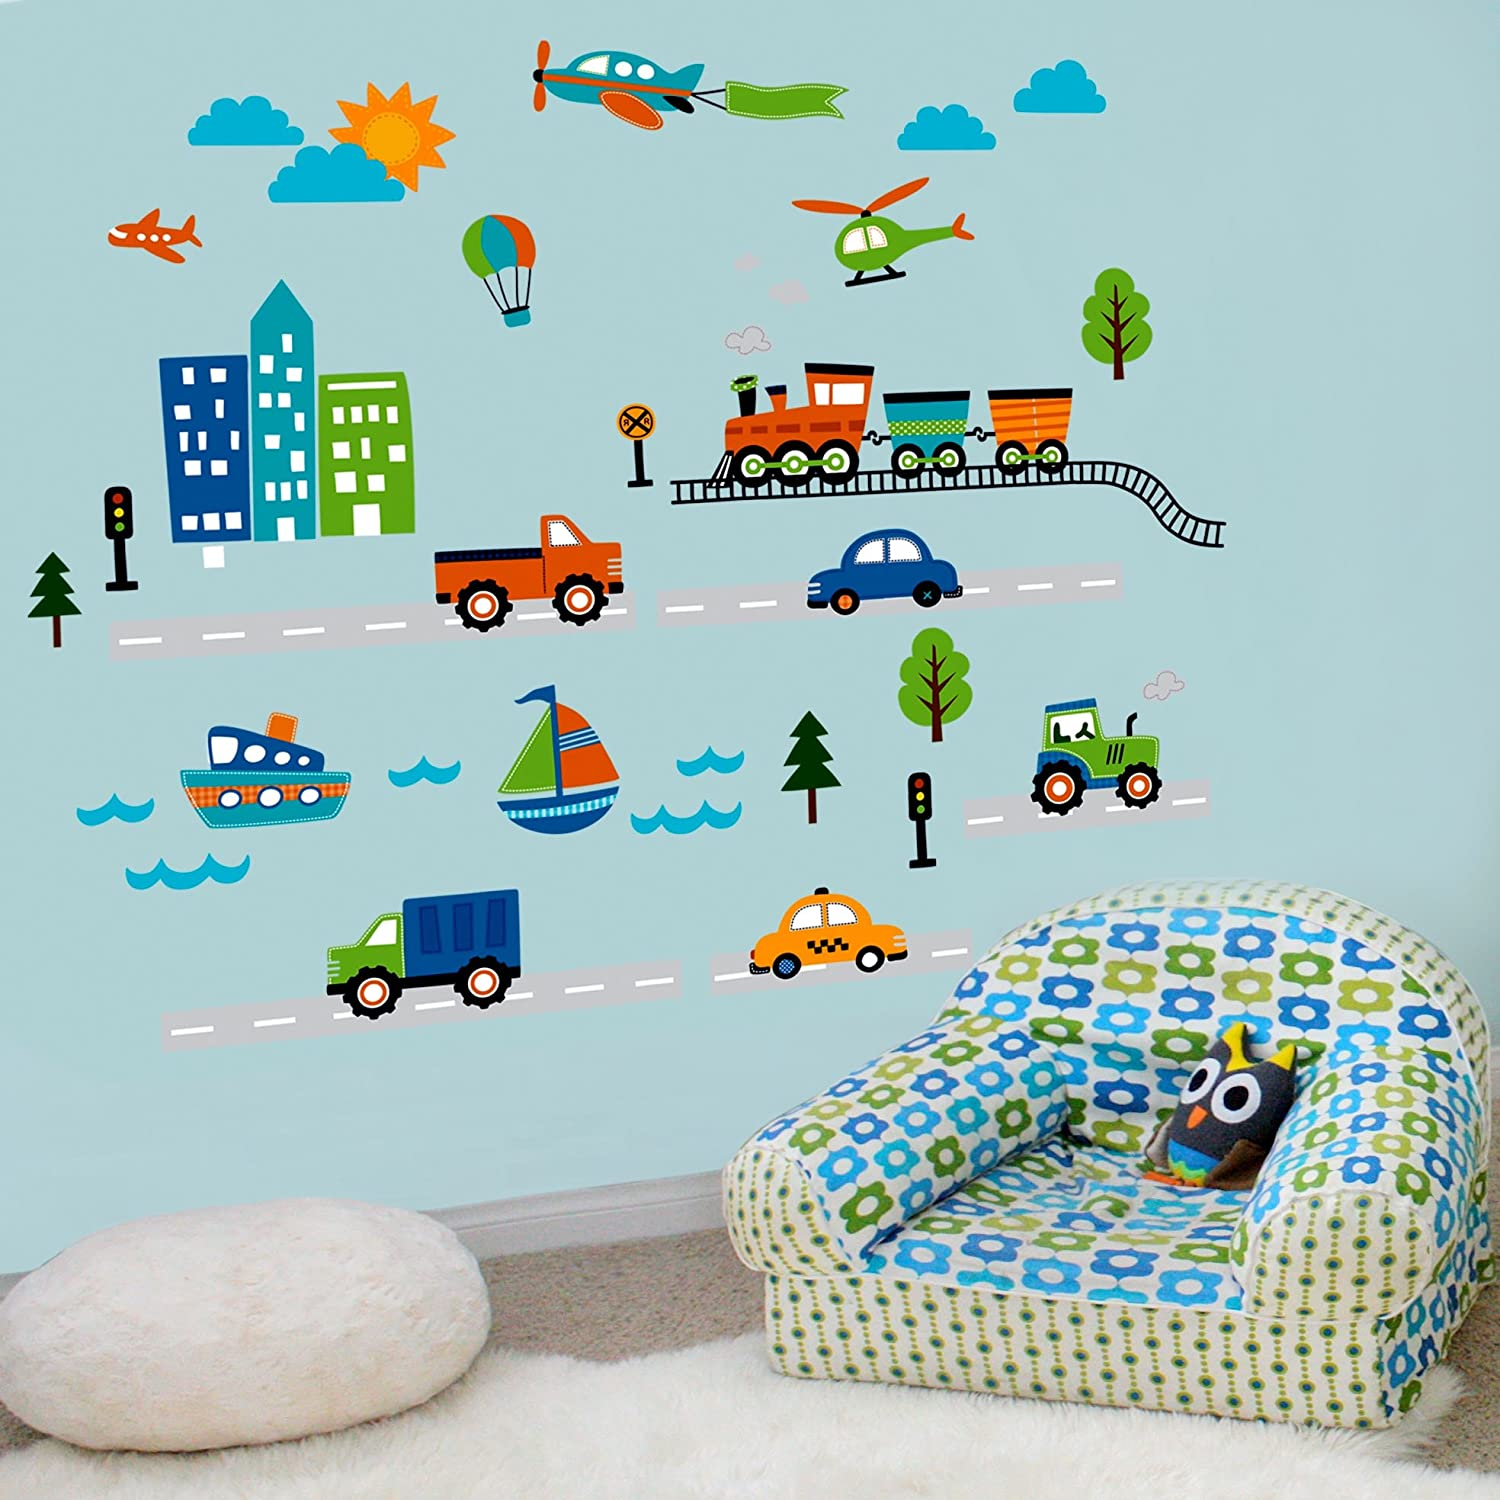 Amazon cherrycreek decals transportation and city scene kids amazon cherrycreek decals transportation and city scene kids room peel and stick wall sticker decals nursery wall decor baby amipublicfo Gallery